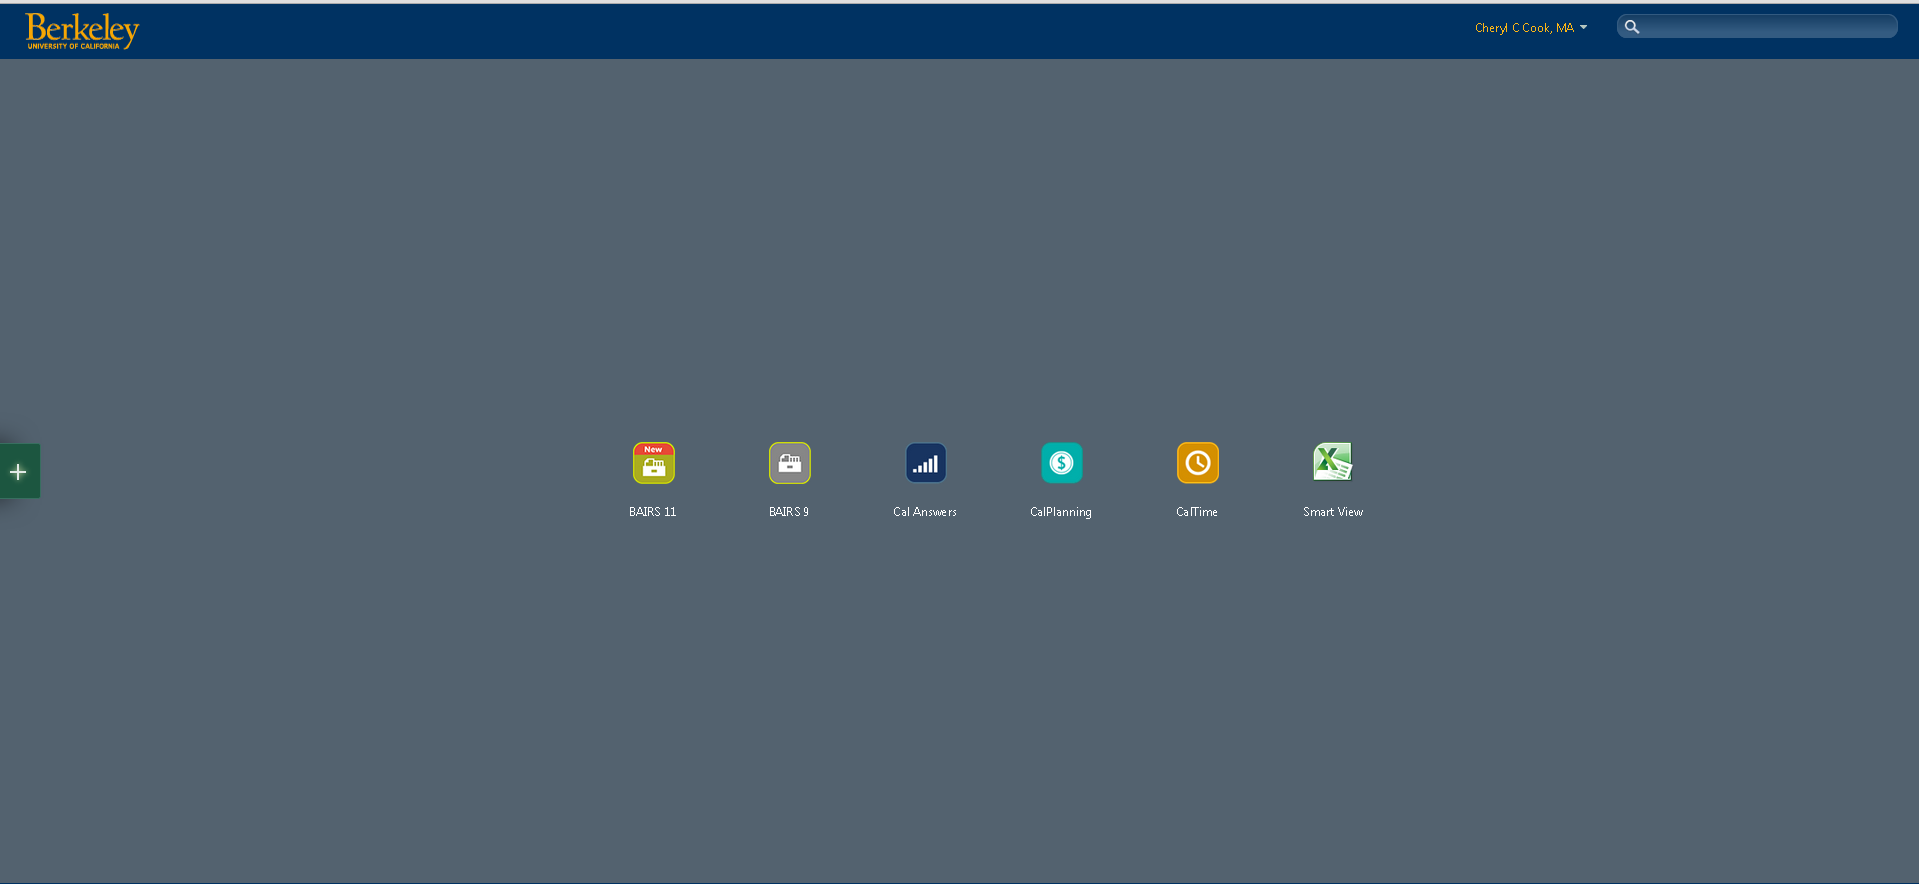 Home - Using research tools via Citrix - Library Guides at UC Berkeley